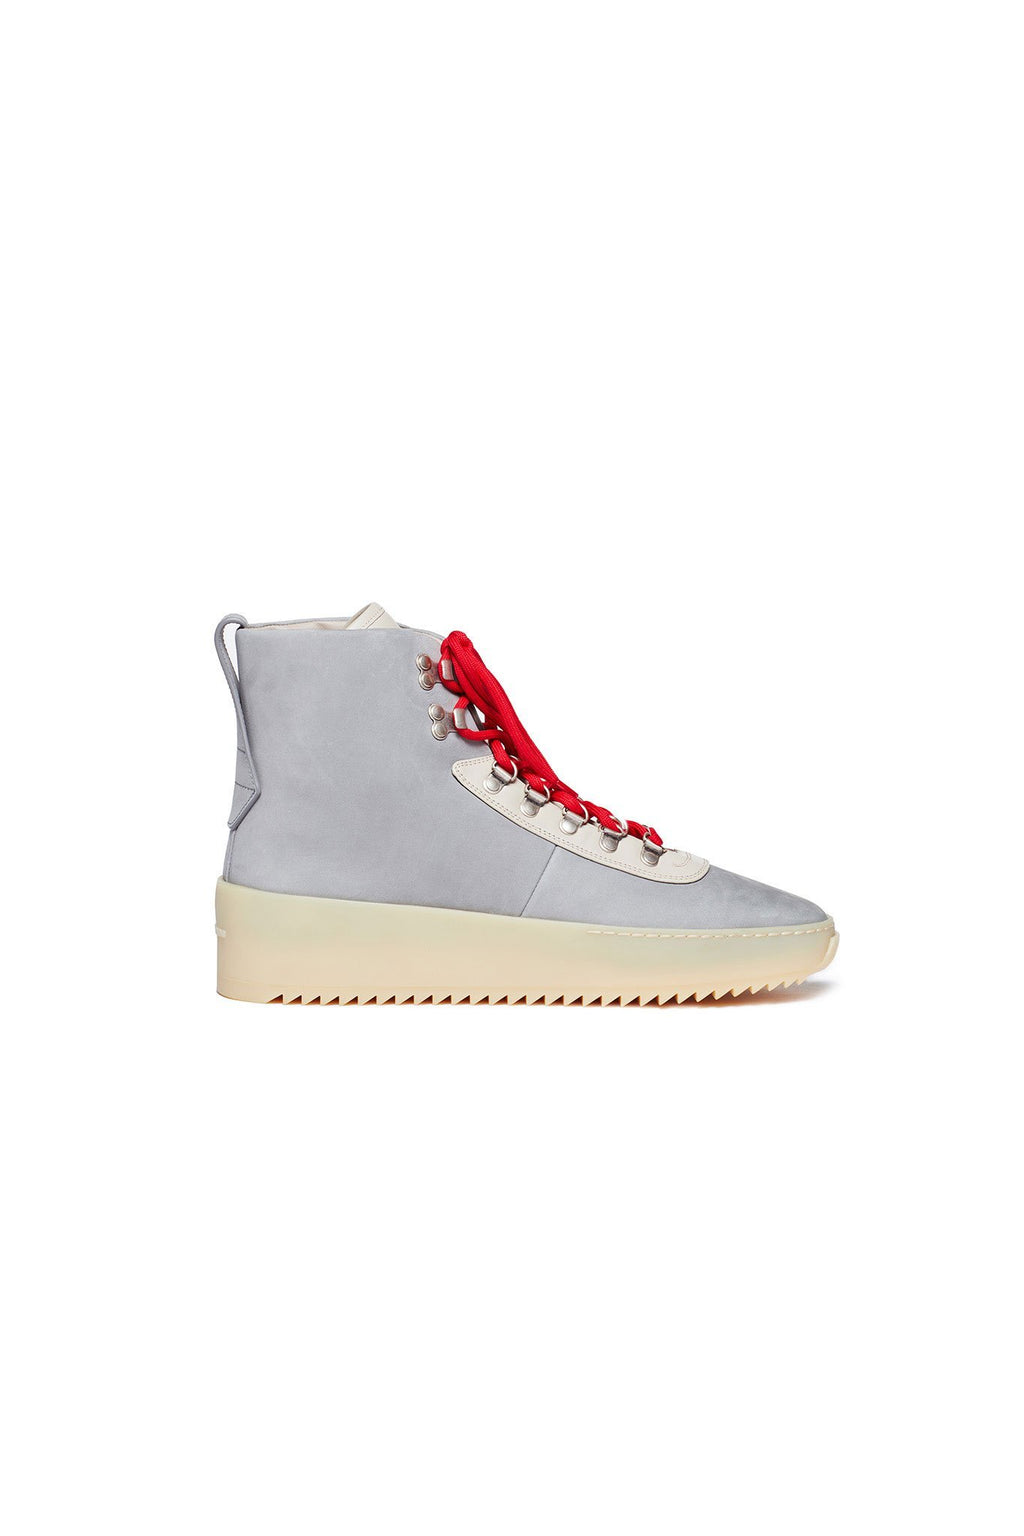 Paris Sky Gray / Perla / Gum Hiking Sneaker